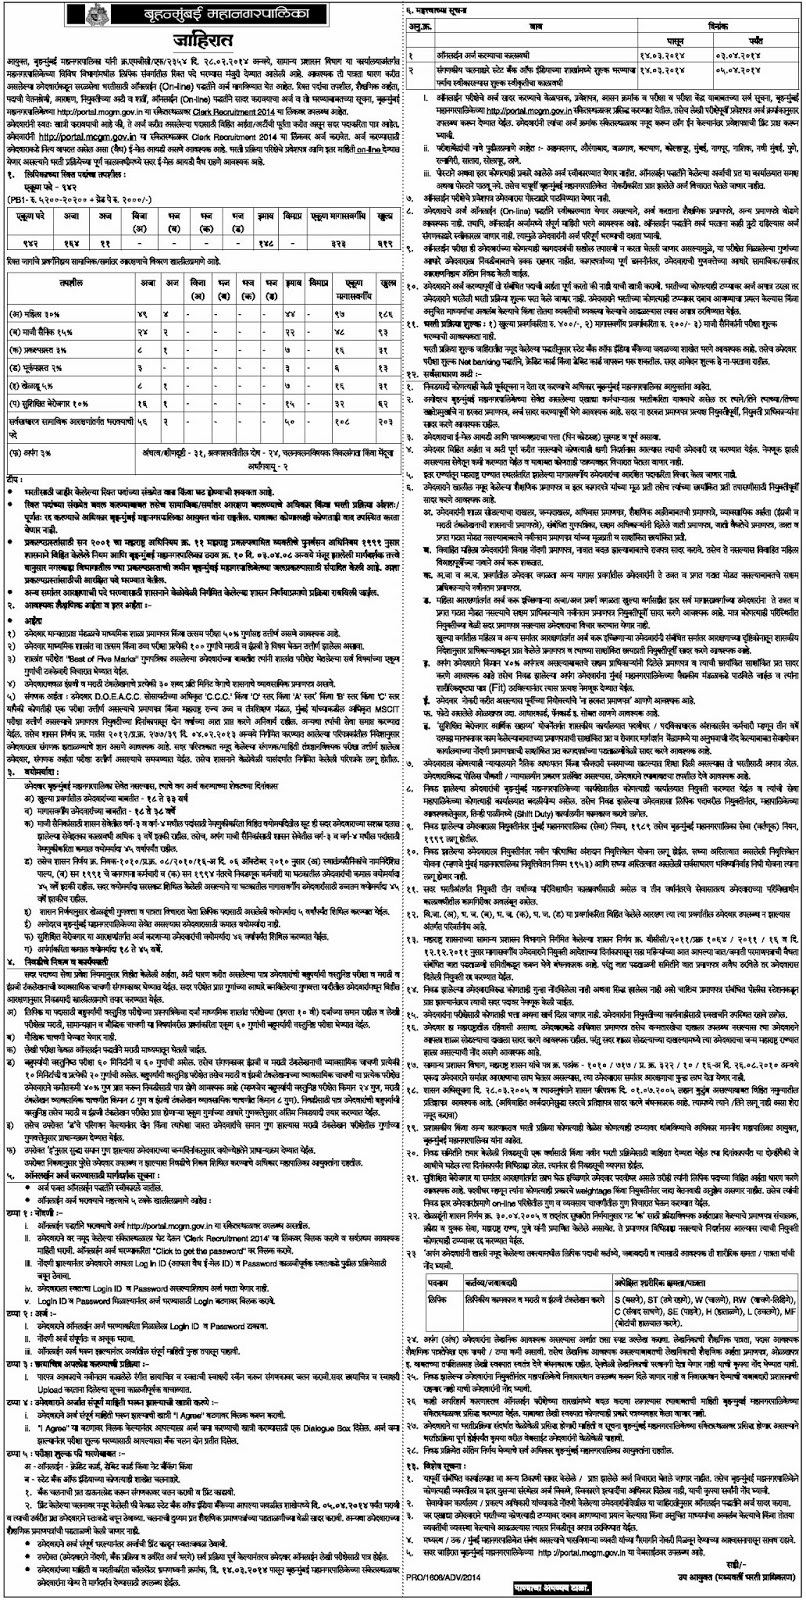 bmc clerk recruitment 2014 sa post get official notification